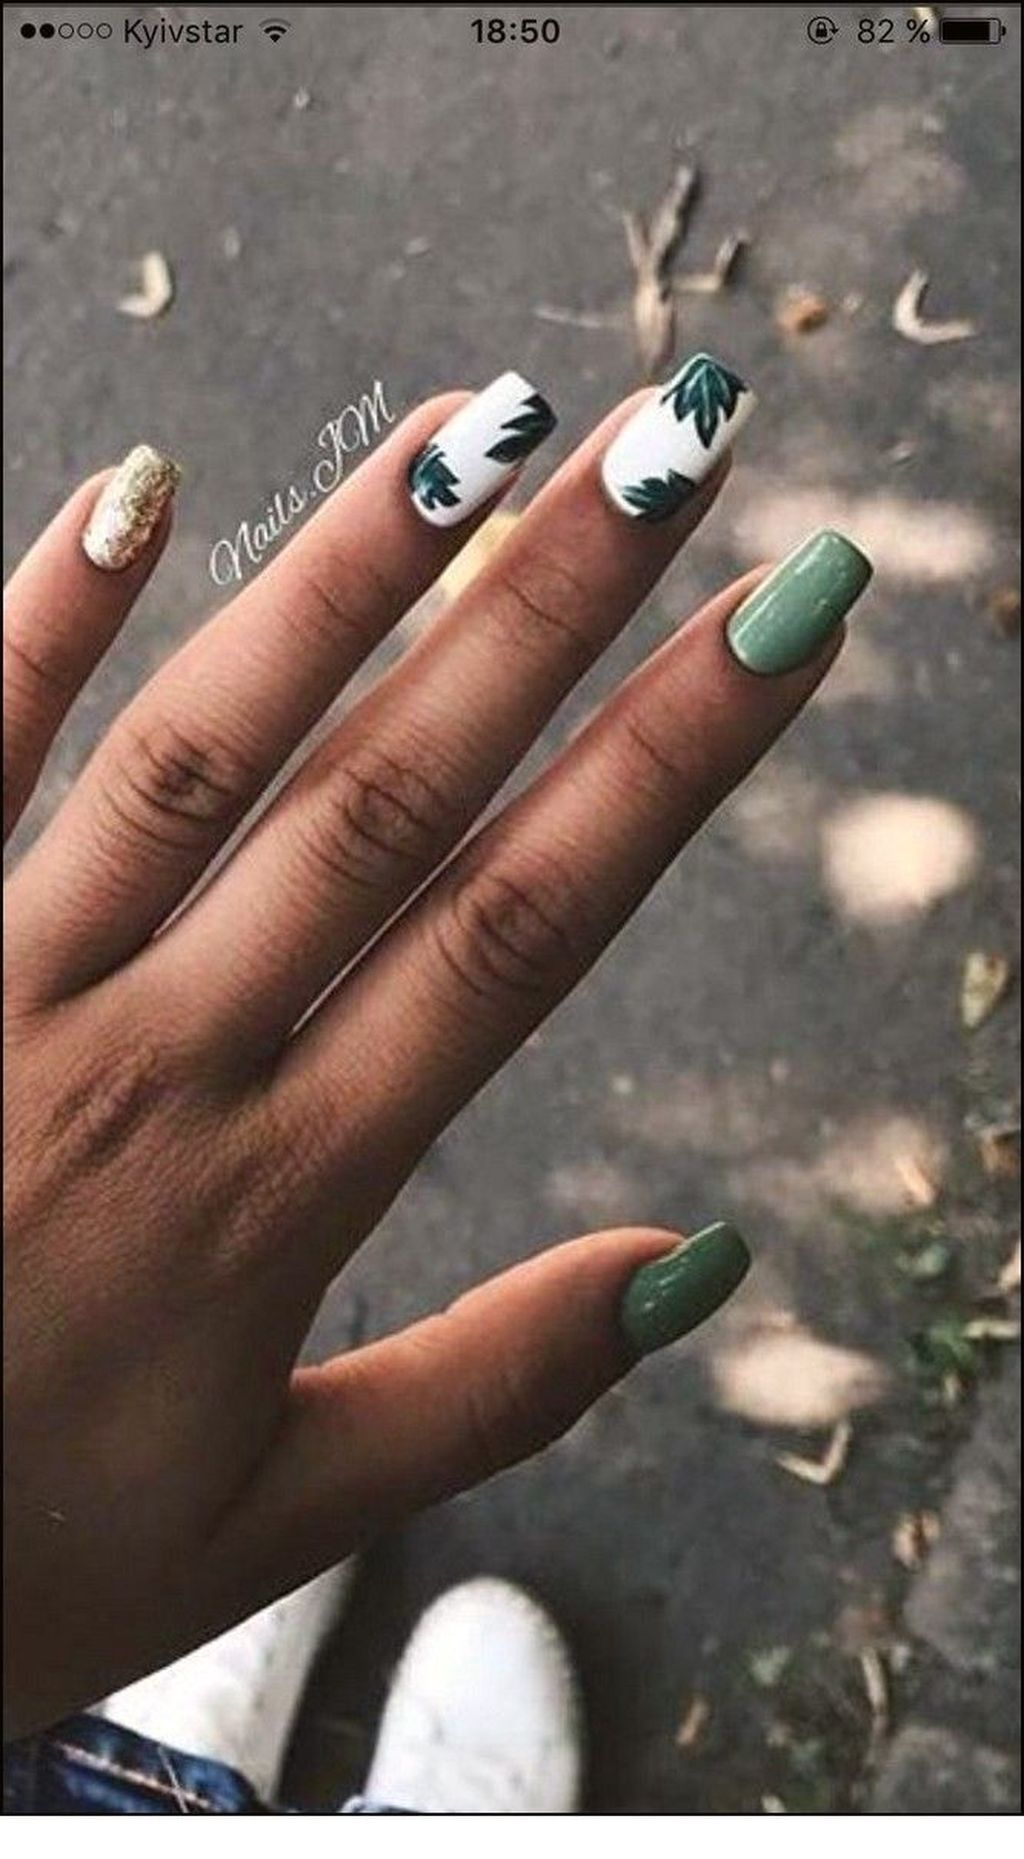 Pin By Adusaaak On Nails In 2020 Gelove Nehty Design Nehtu Kratke Nehty